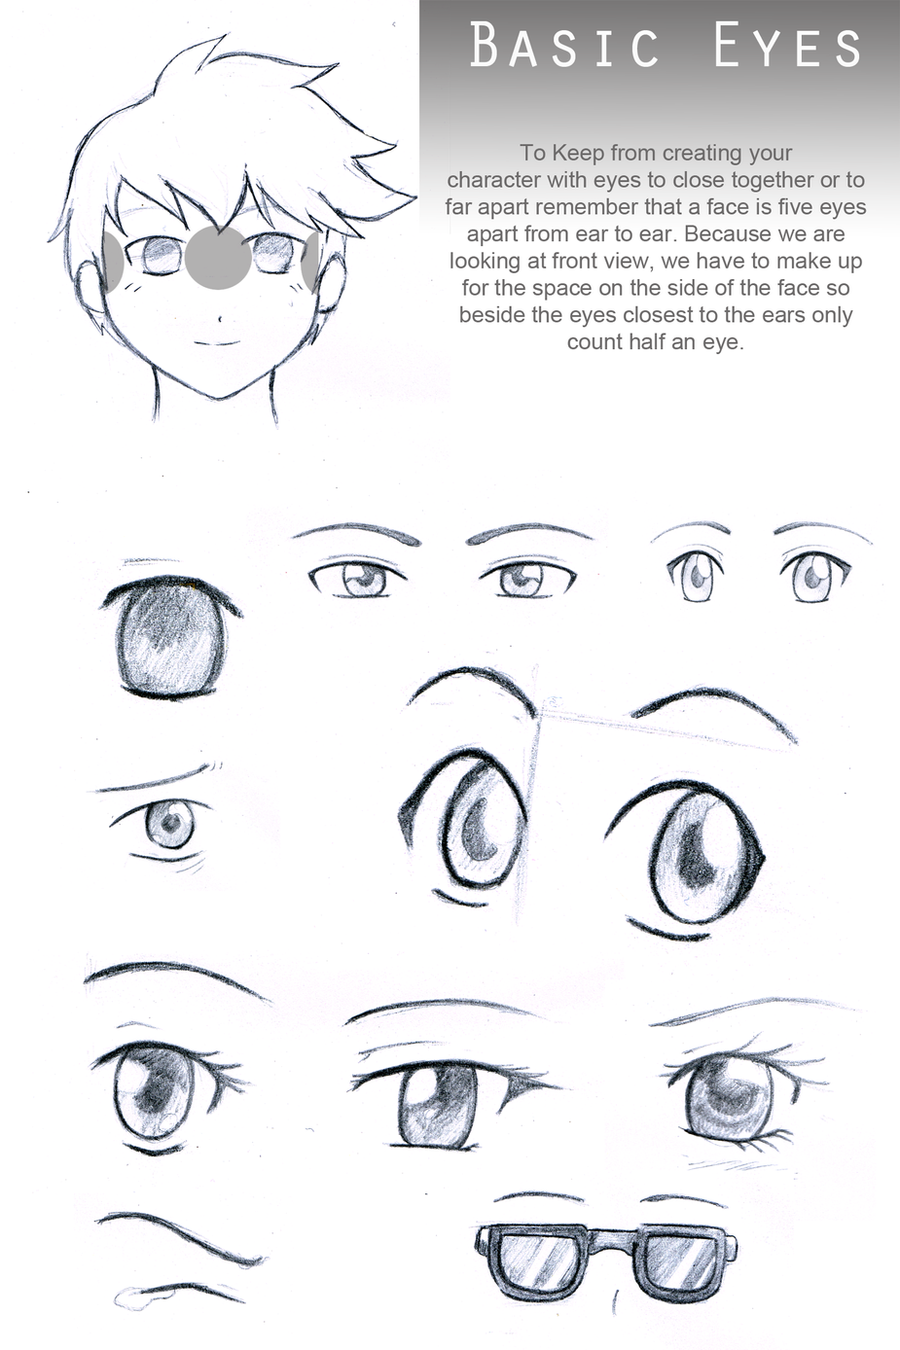 Basic Eyes Reference Sheet By Sapheron-Art On DeviantArt